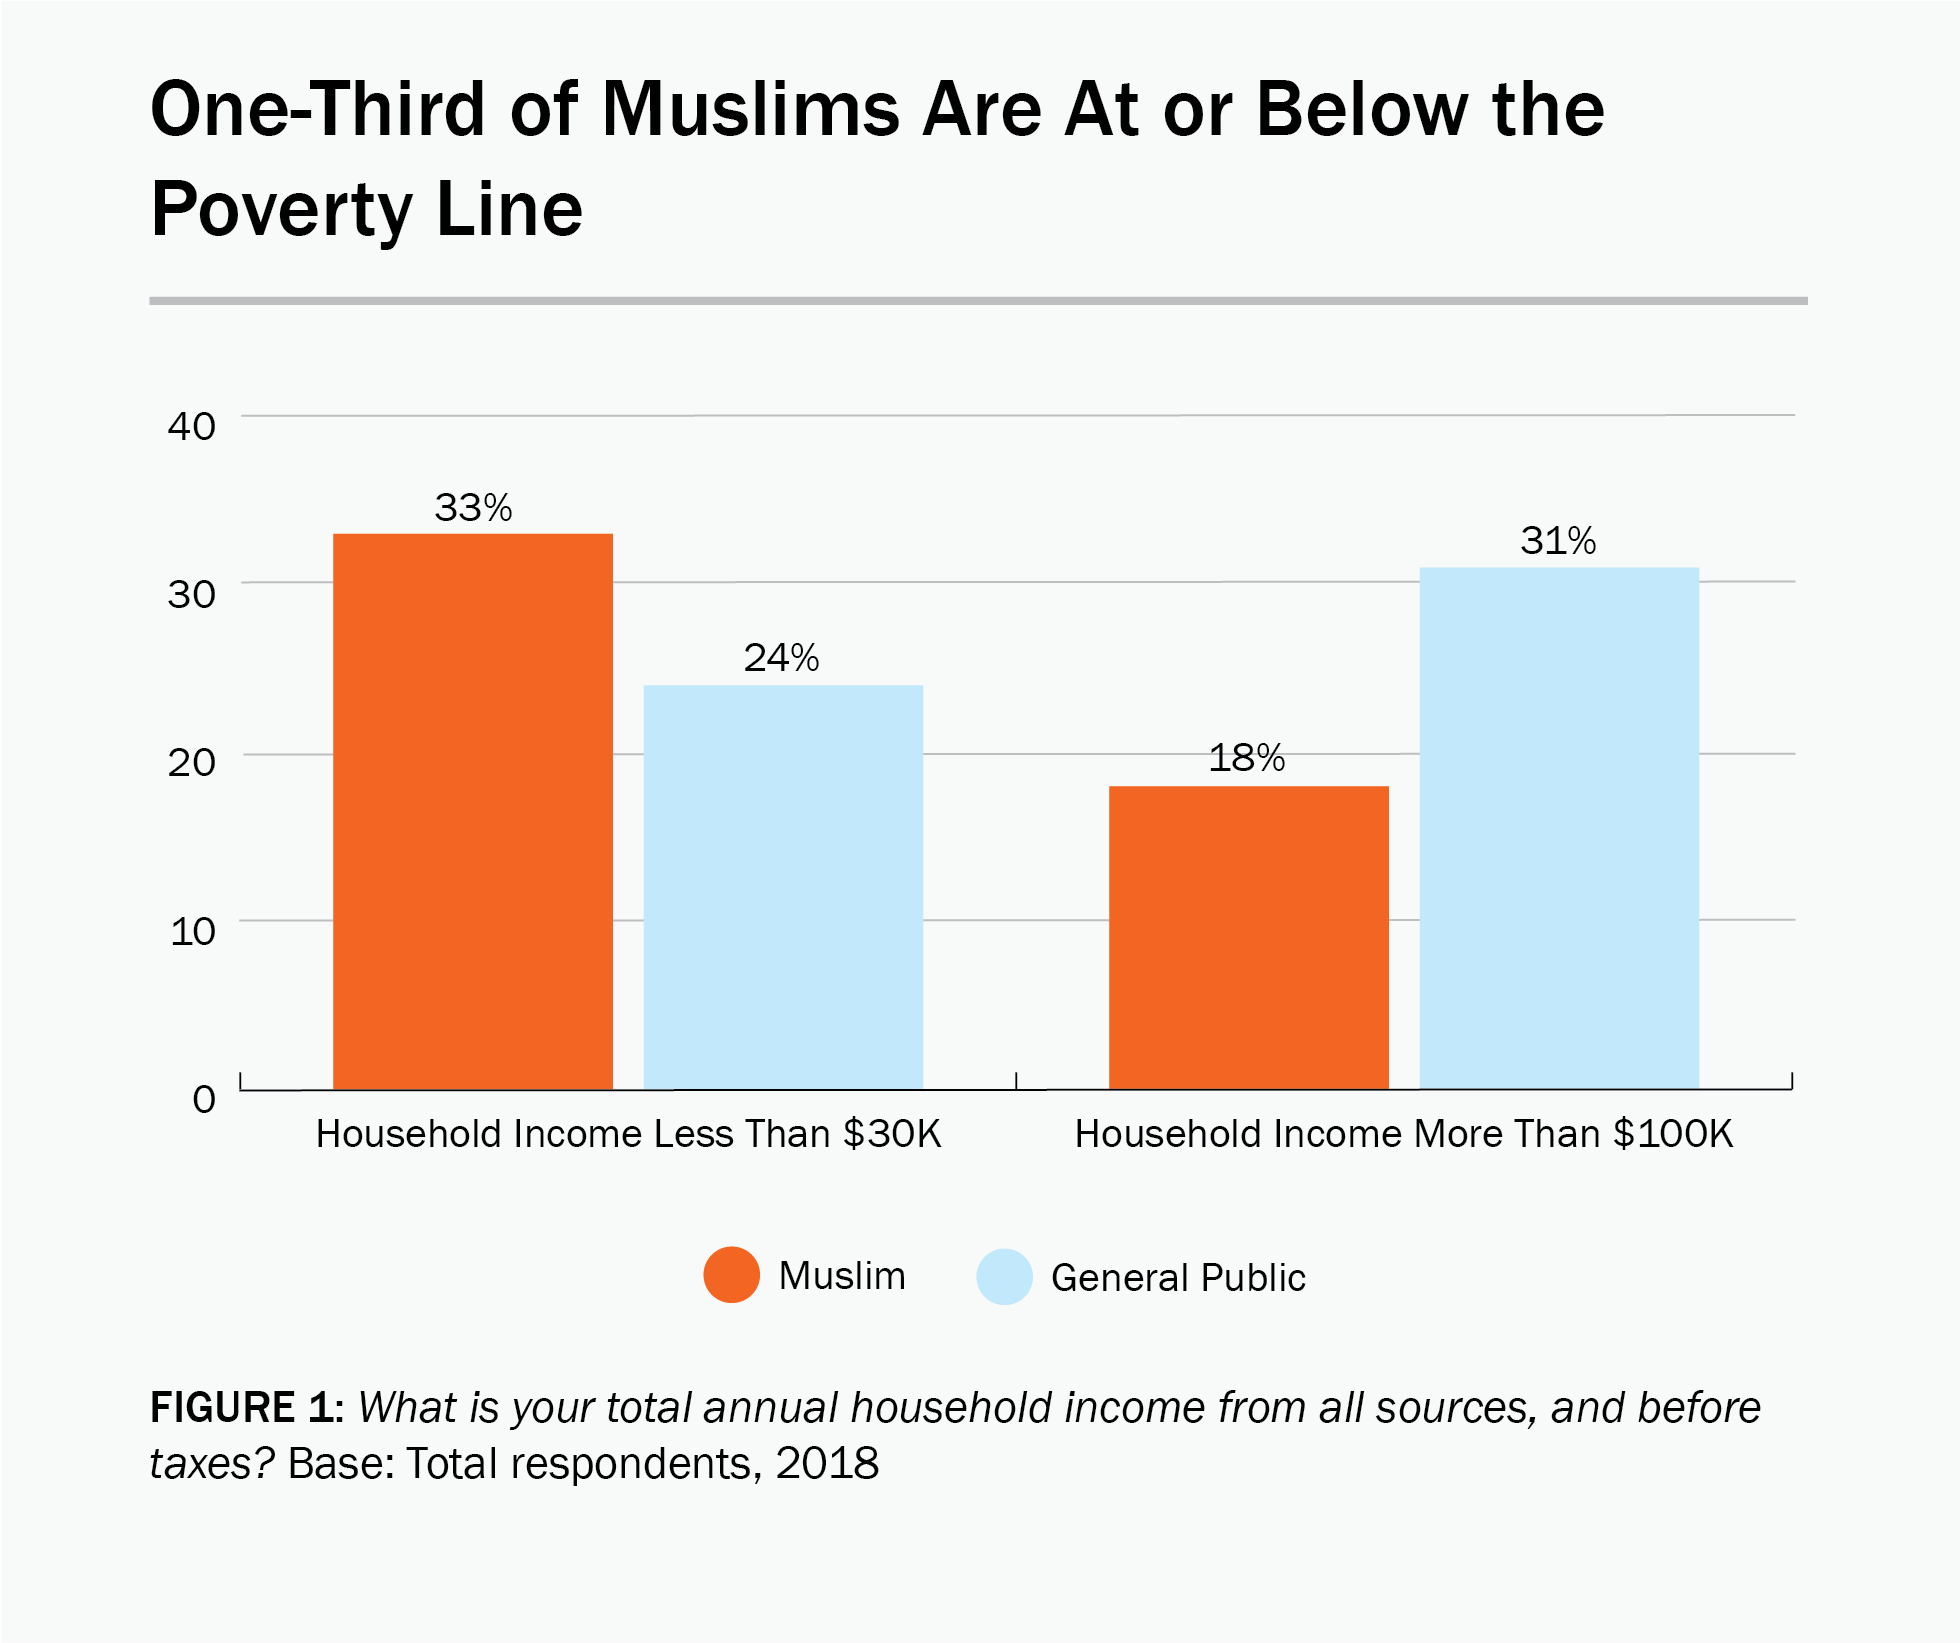 Figure 1: A bar graph showing that one-third of Muslims are at or below the poverty line